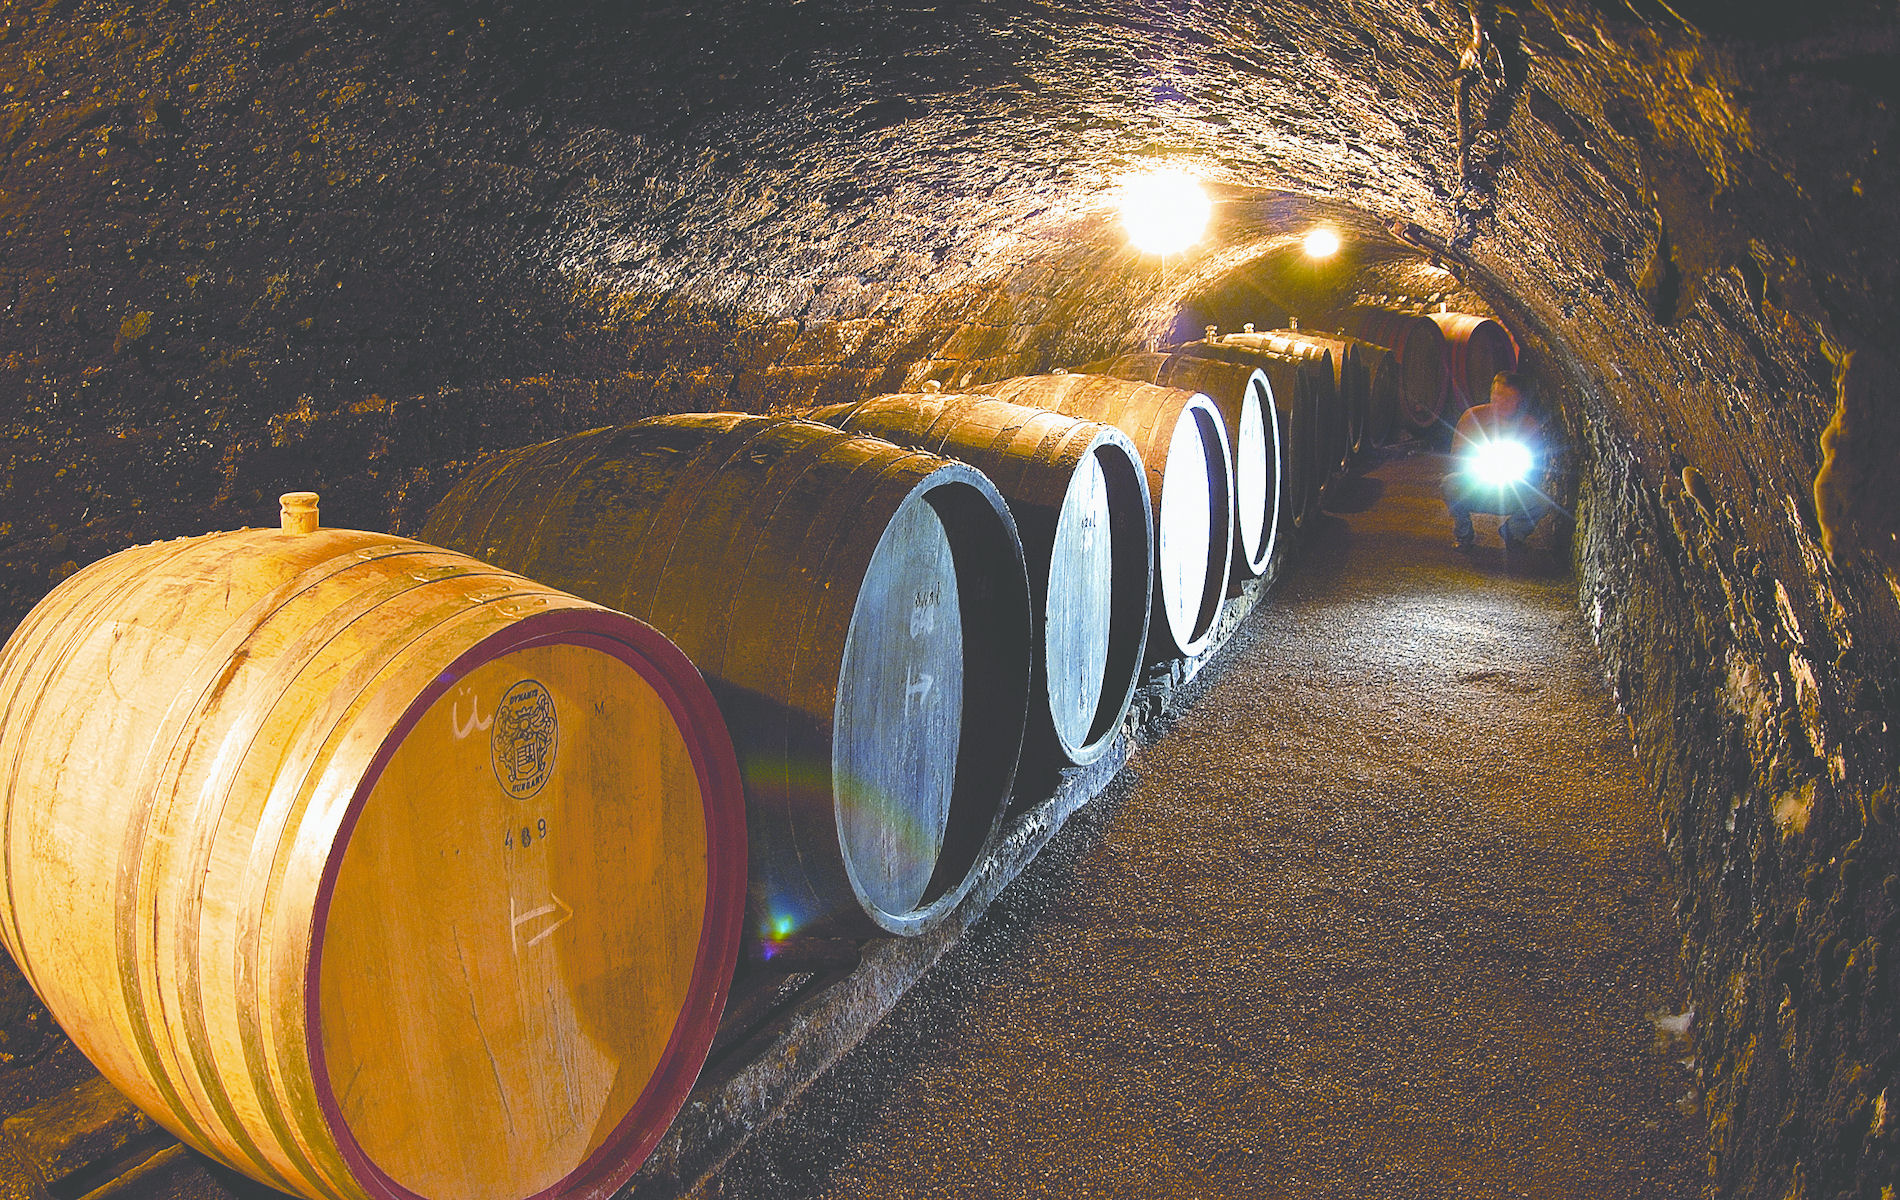 Royal Tokaji Wine Barrels